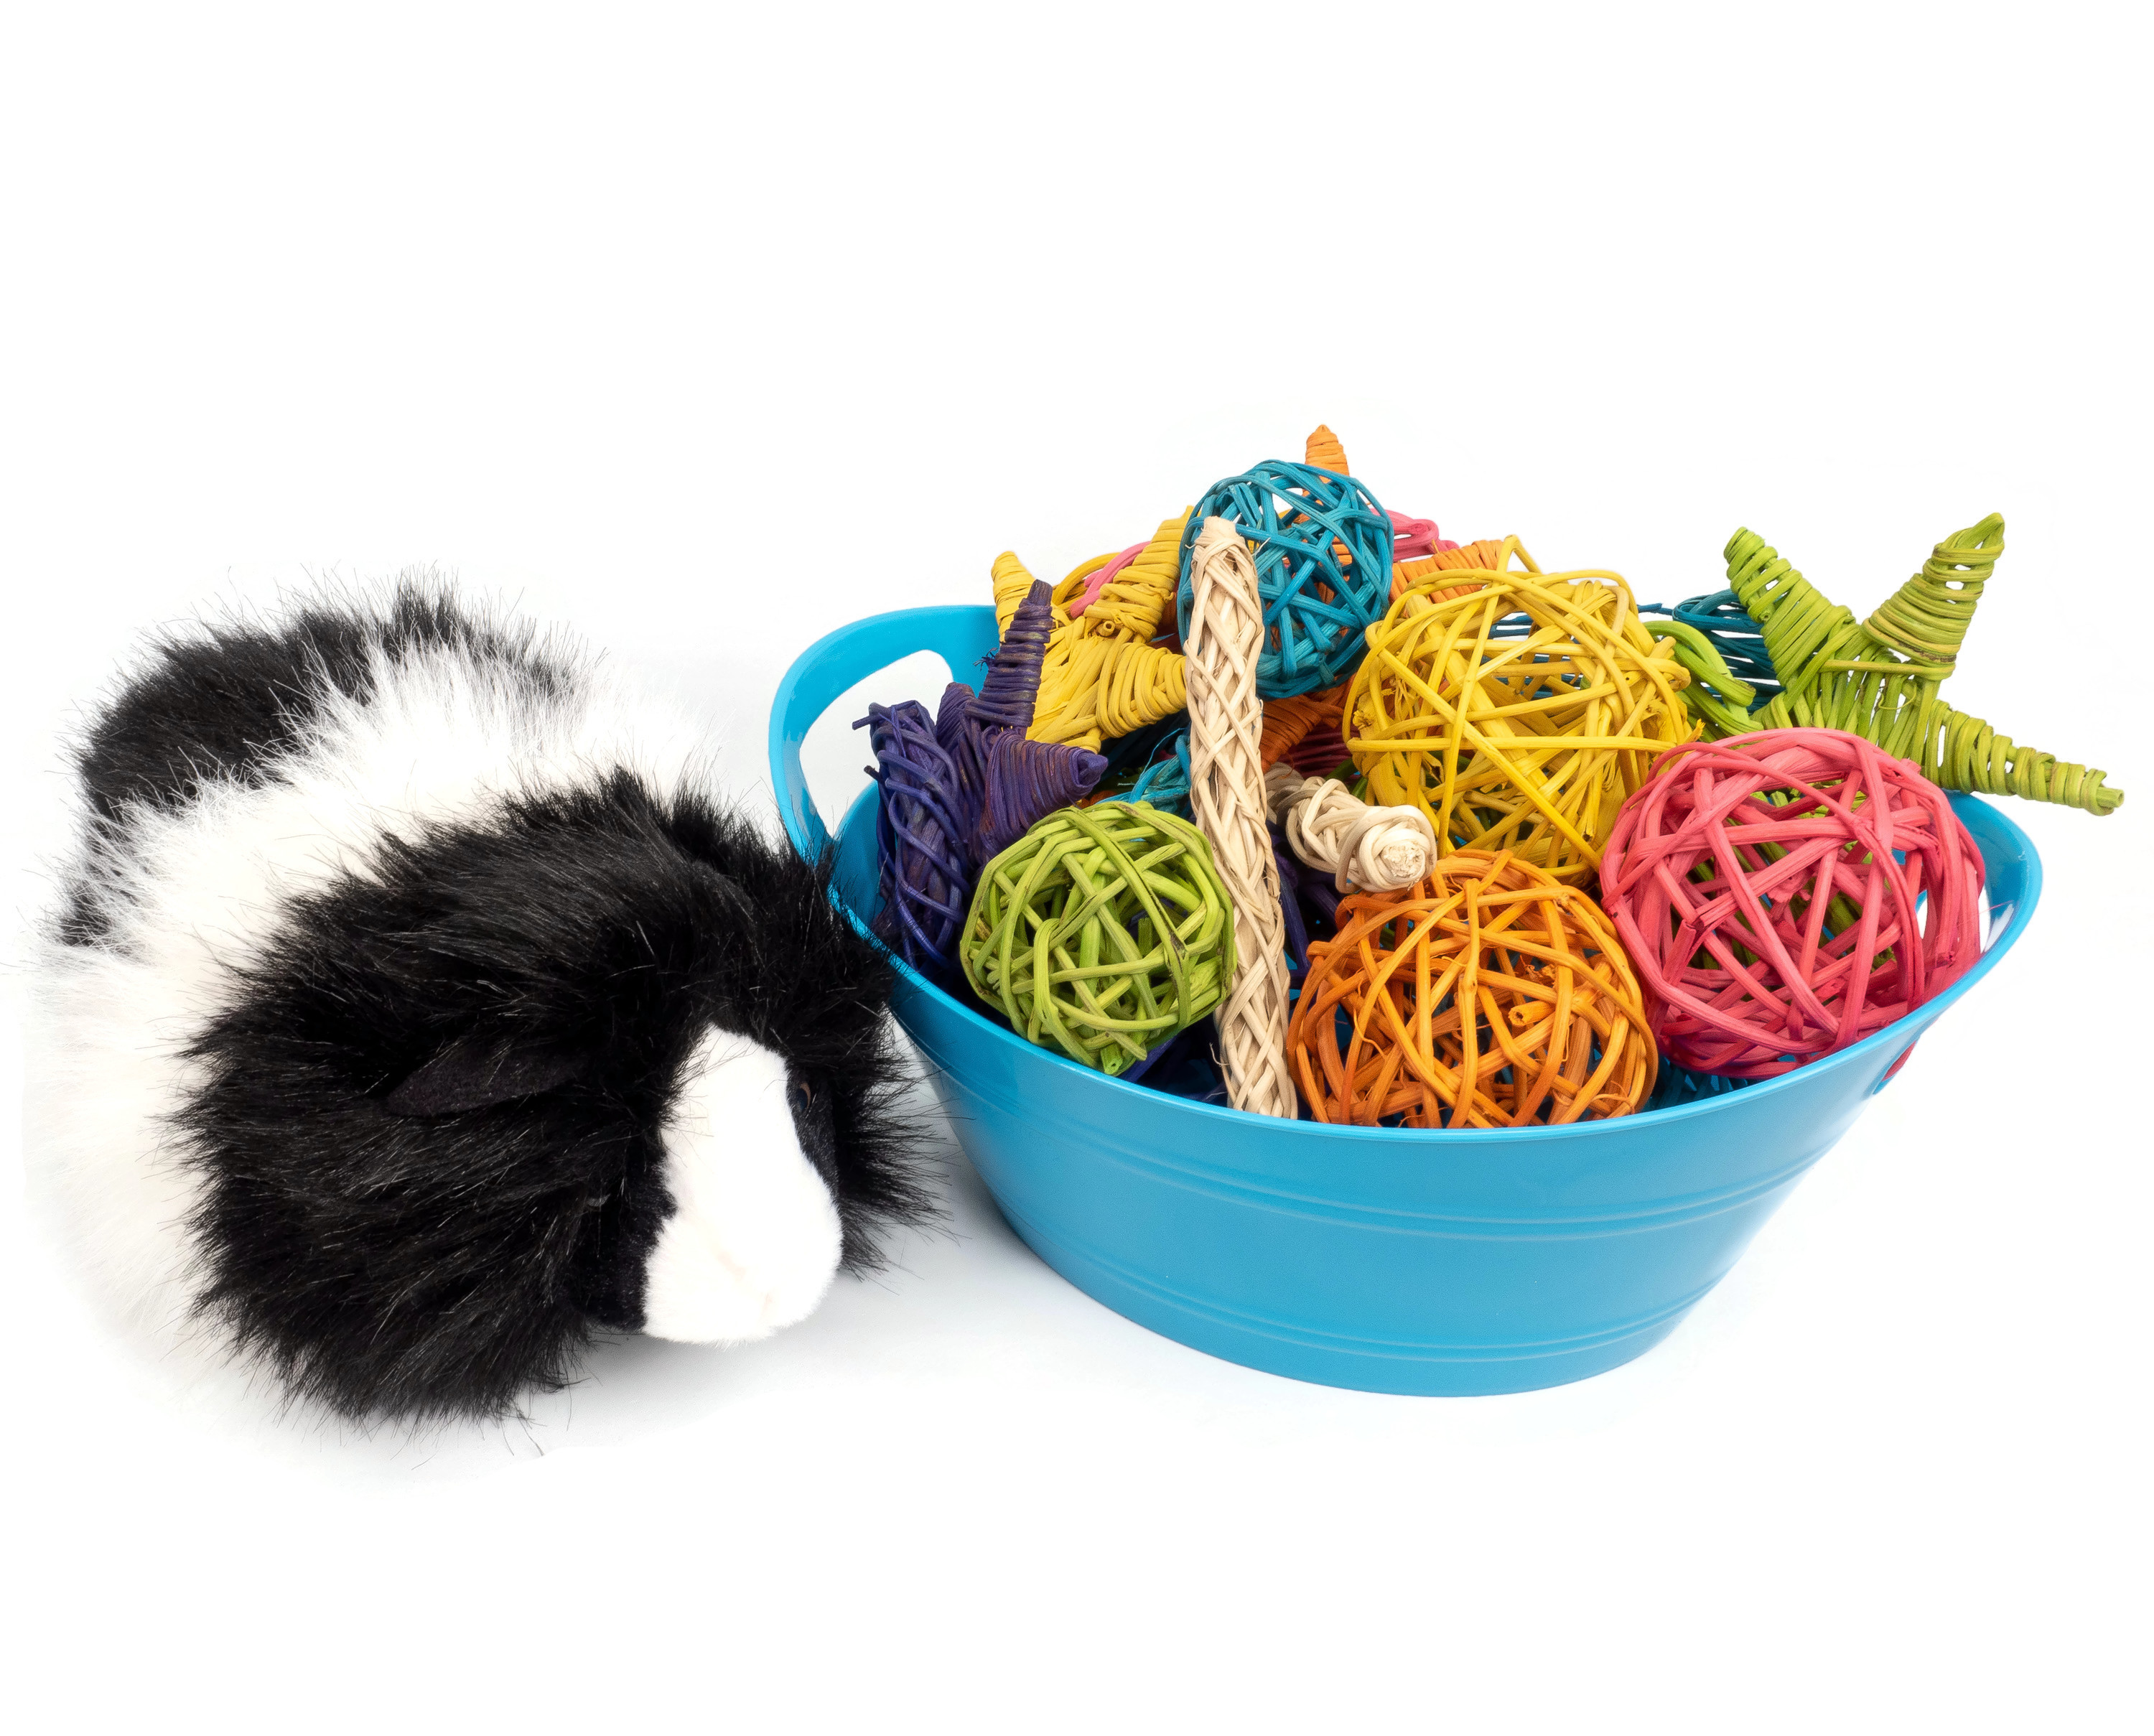 Fuzzy's Vine Chew Basket (Medium) - Loved by Bunny Rabbits, Guinea Pigs, Chinchillas, and Rats